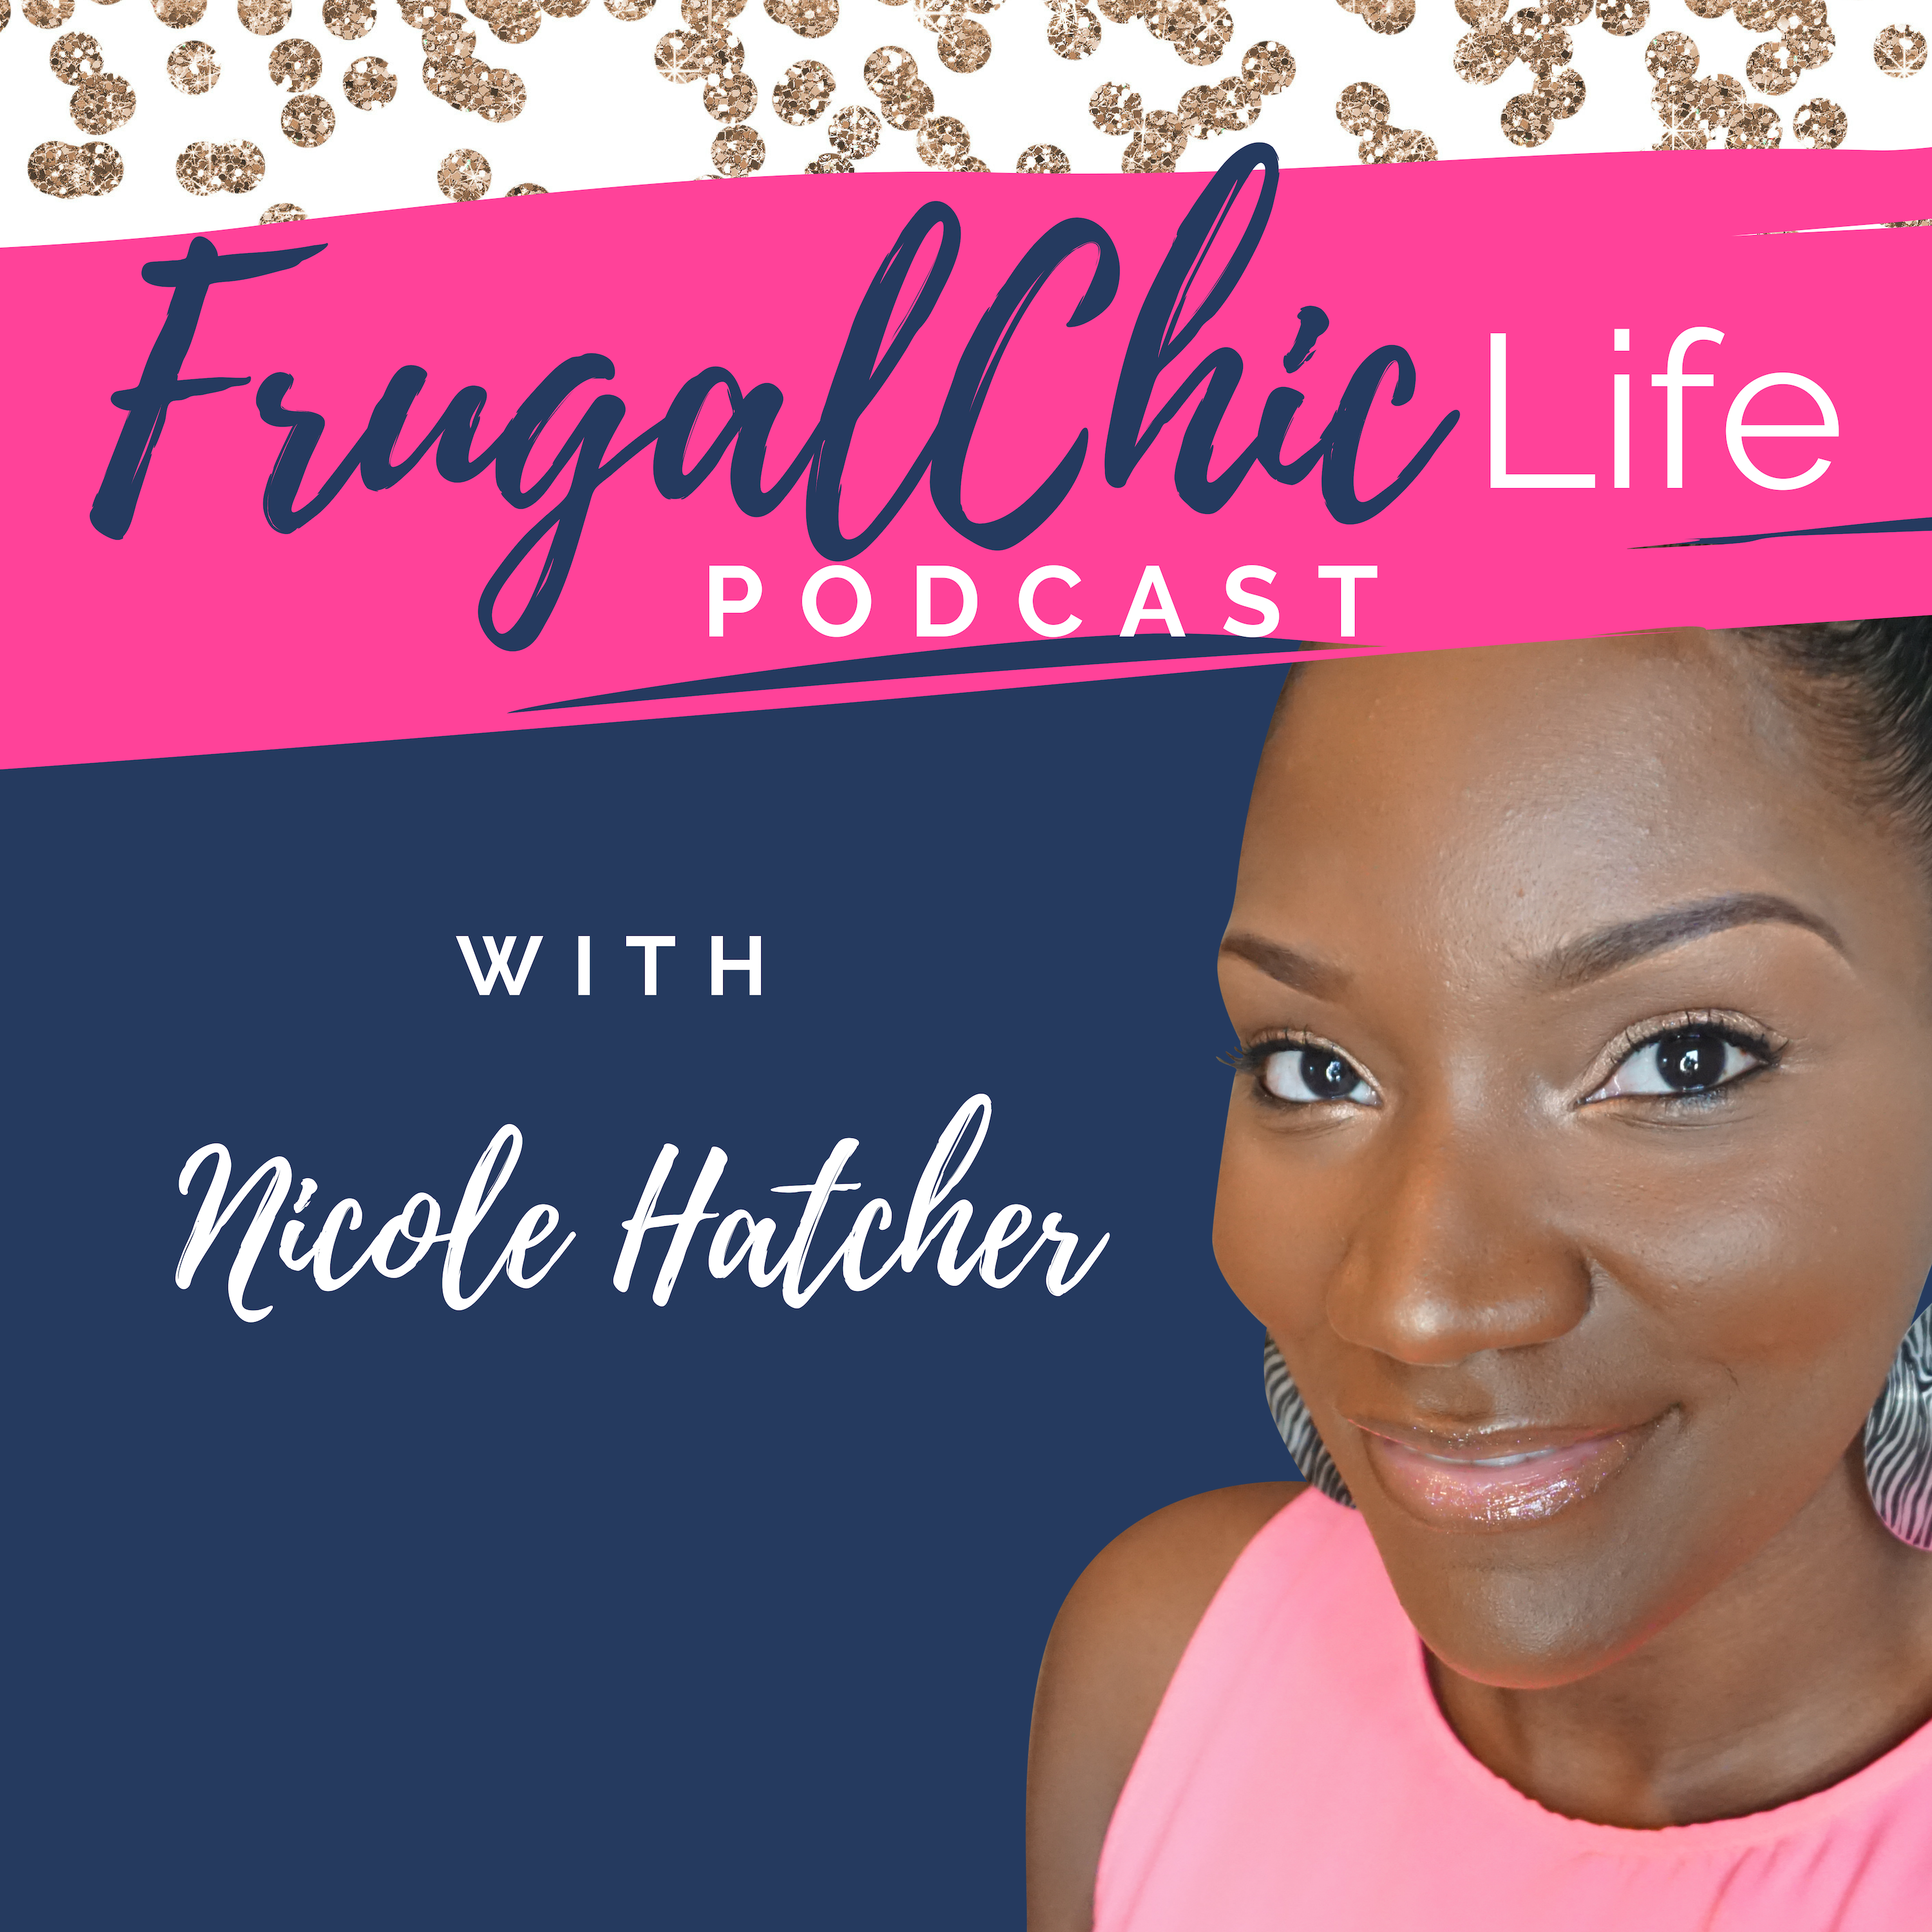 The Frugal Chic Life Podcast show art